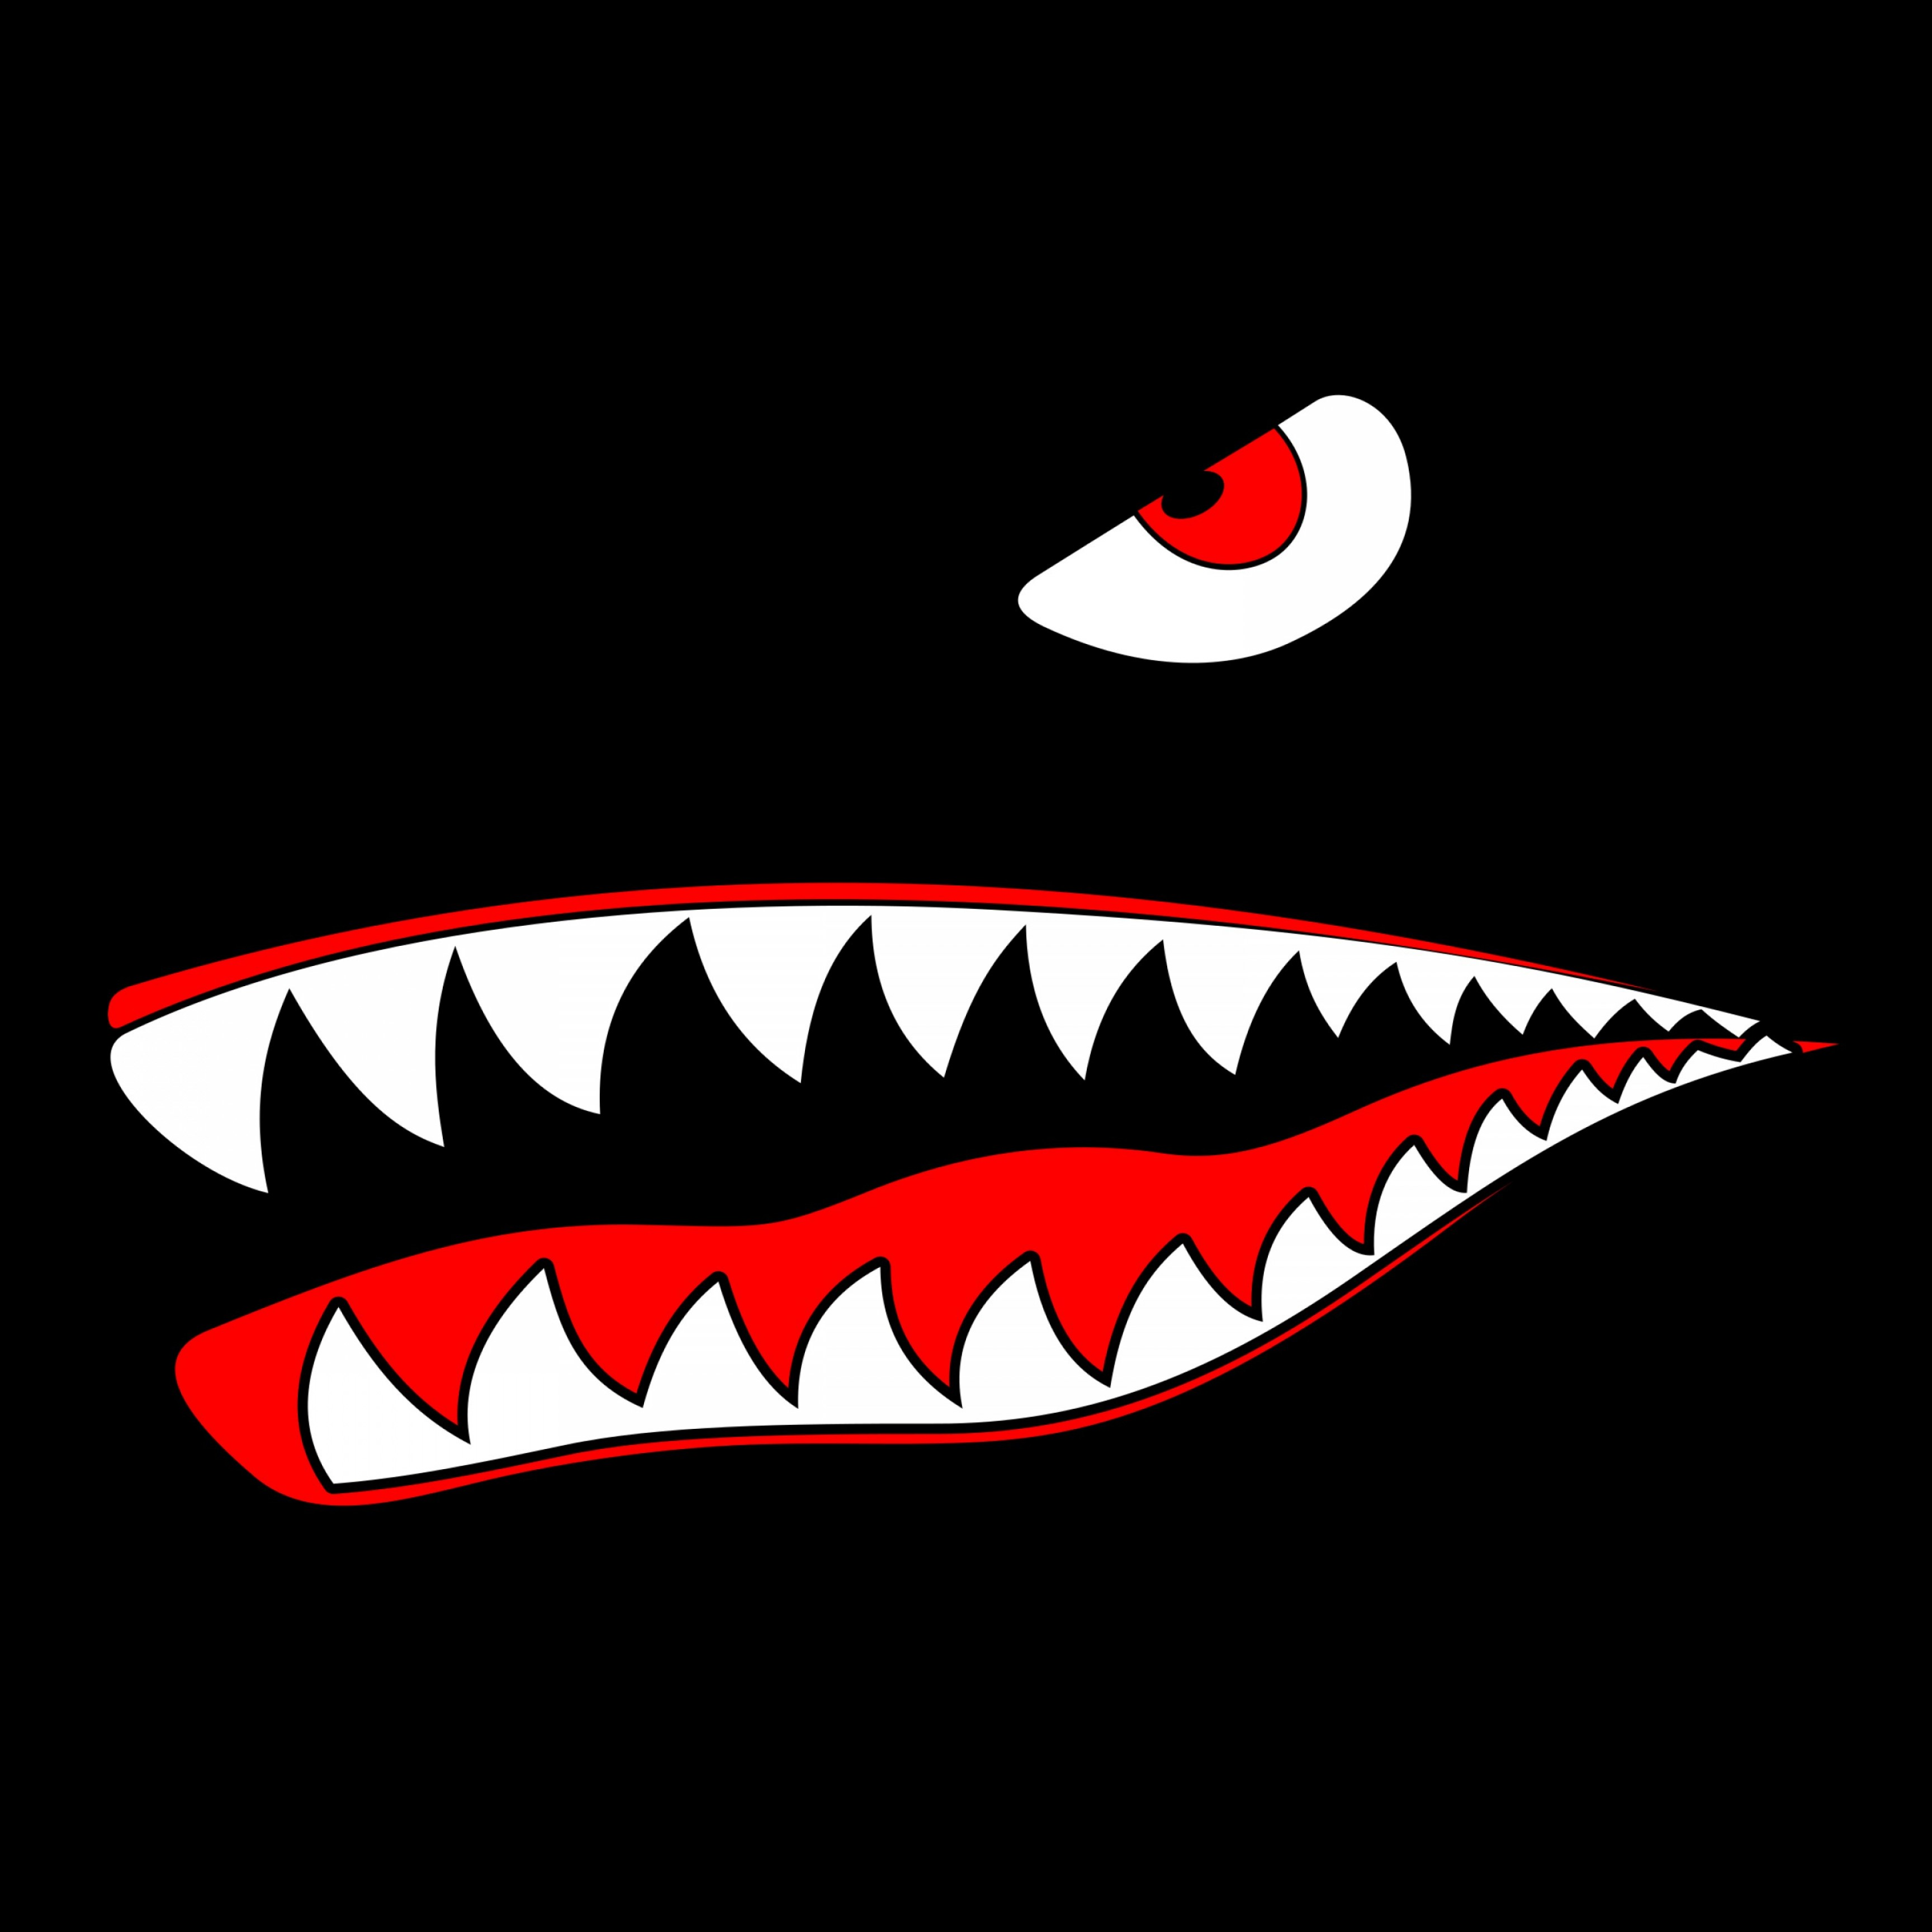 Free clipart of shark eyes and teeth. Tooth vector lamaison